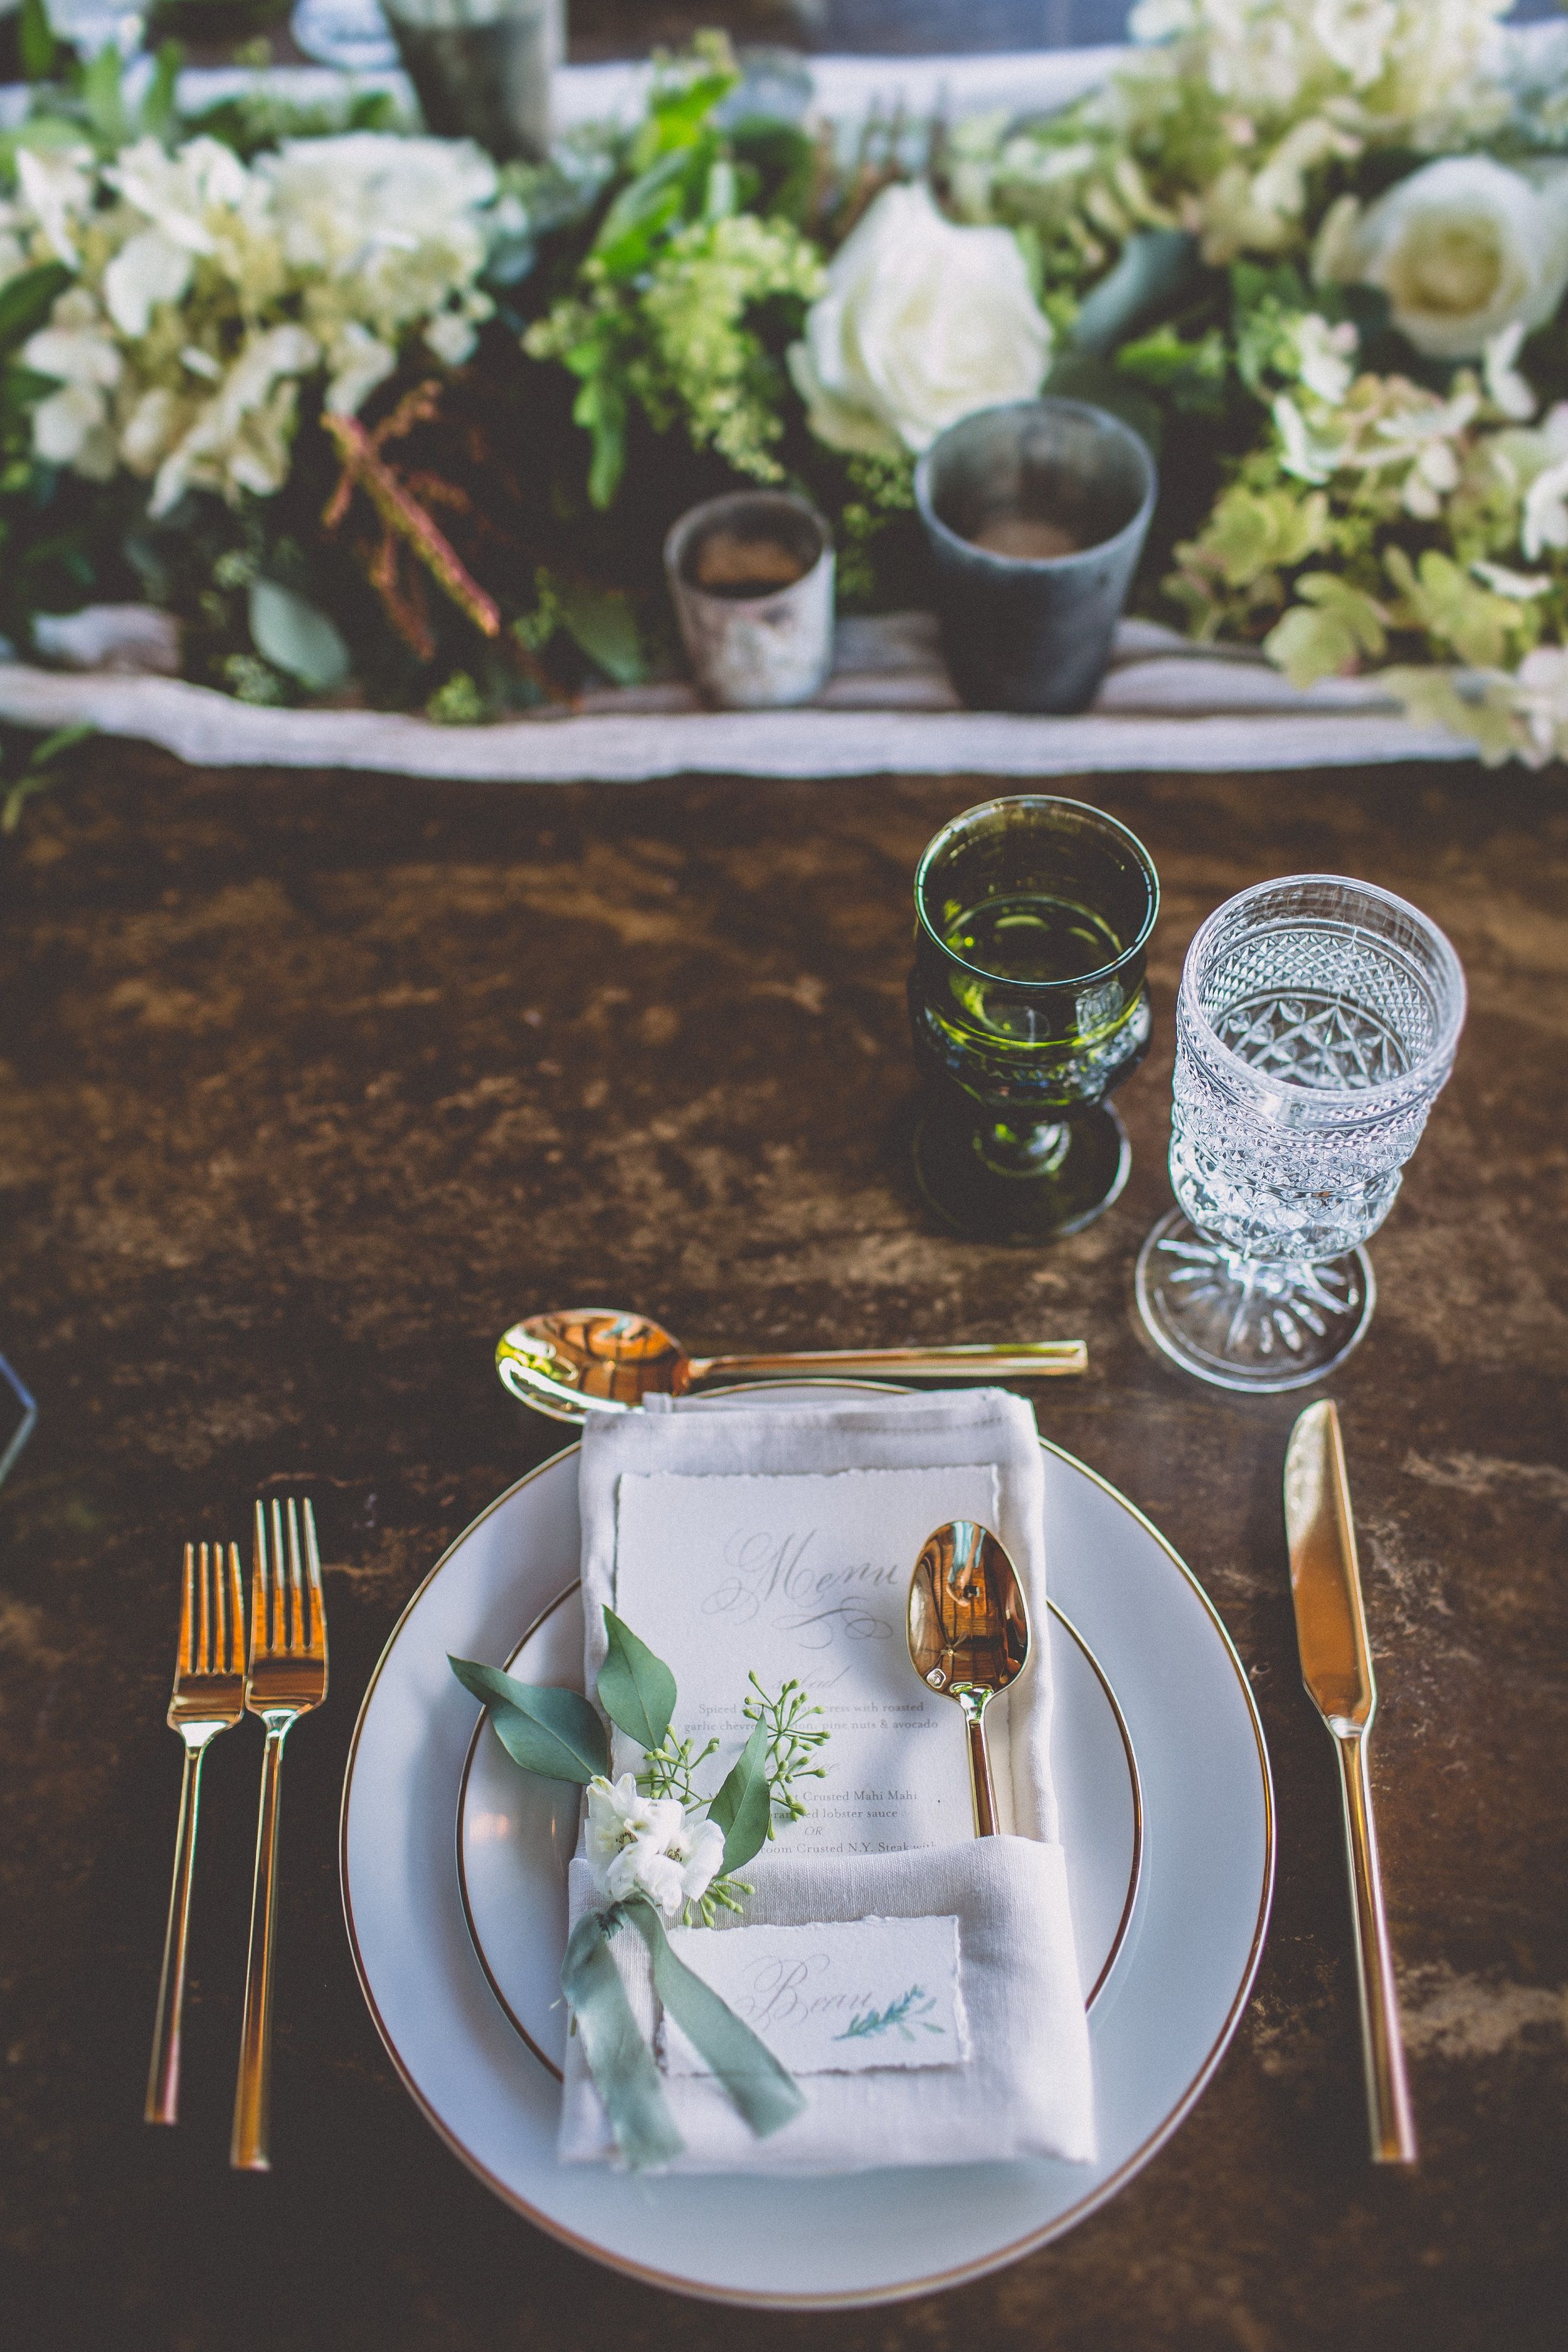 Love Green glass. Wood table. White dishes. Gold cutlery